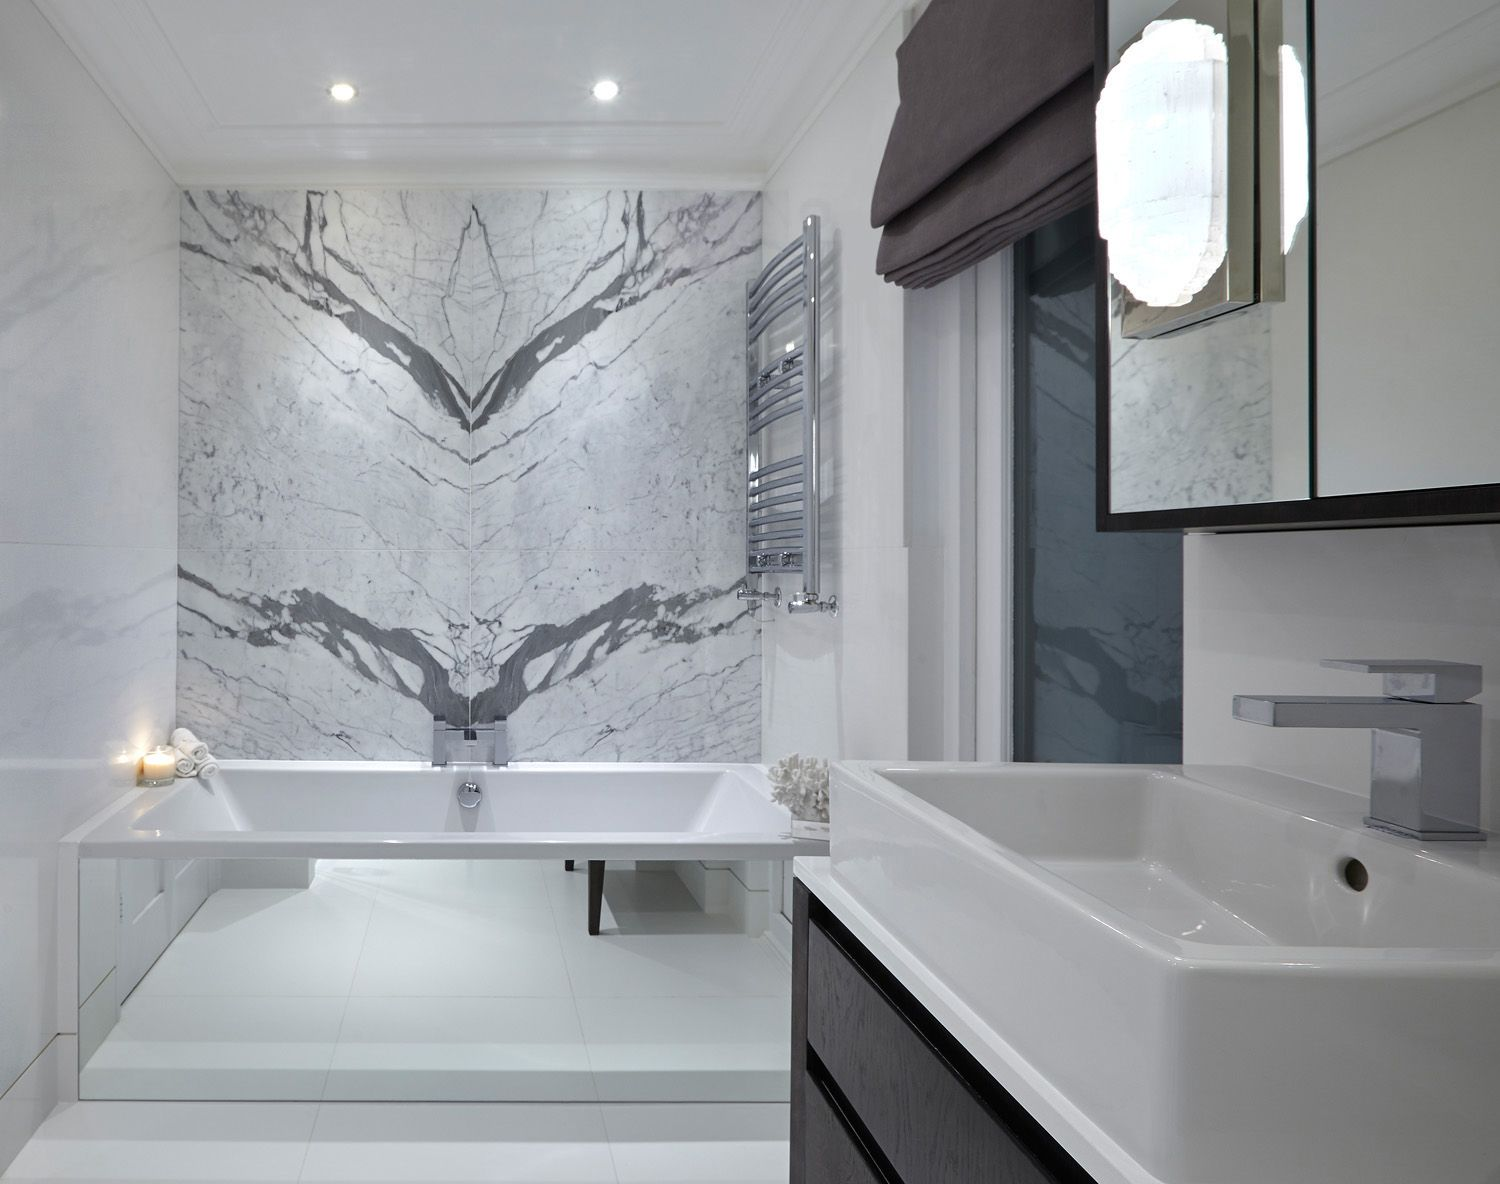 Chelsea ii luxury interior design london surrey for Bathroom interior design london